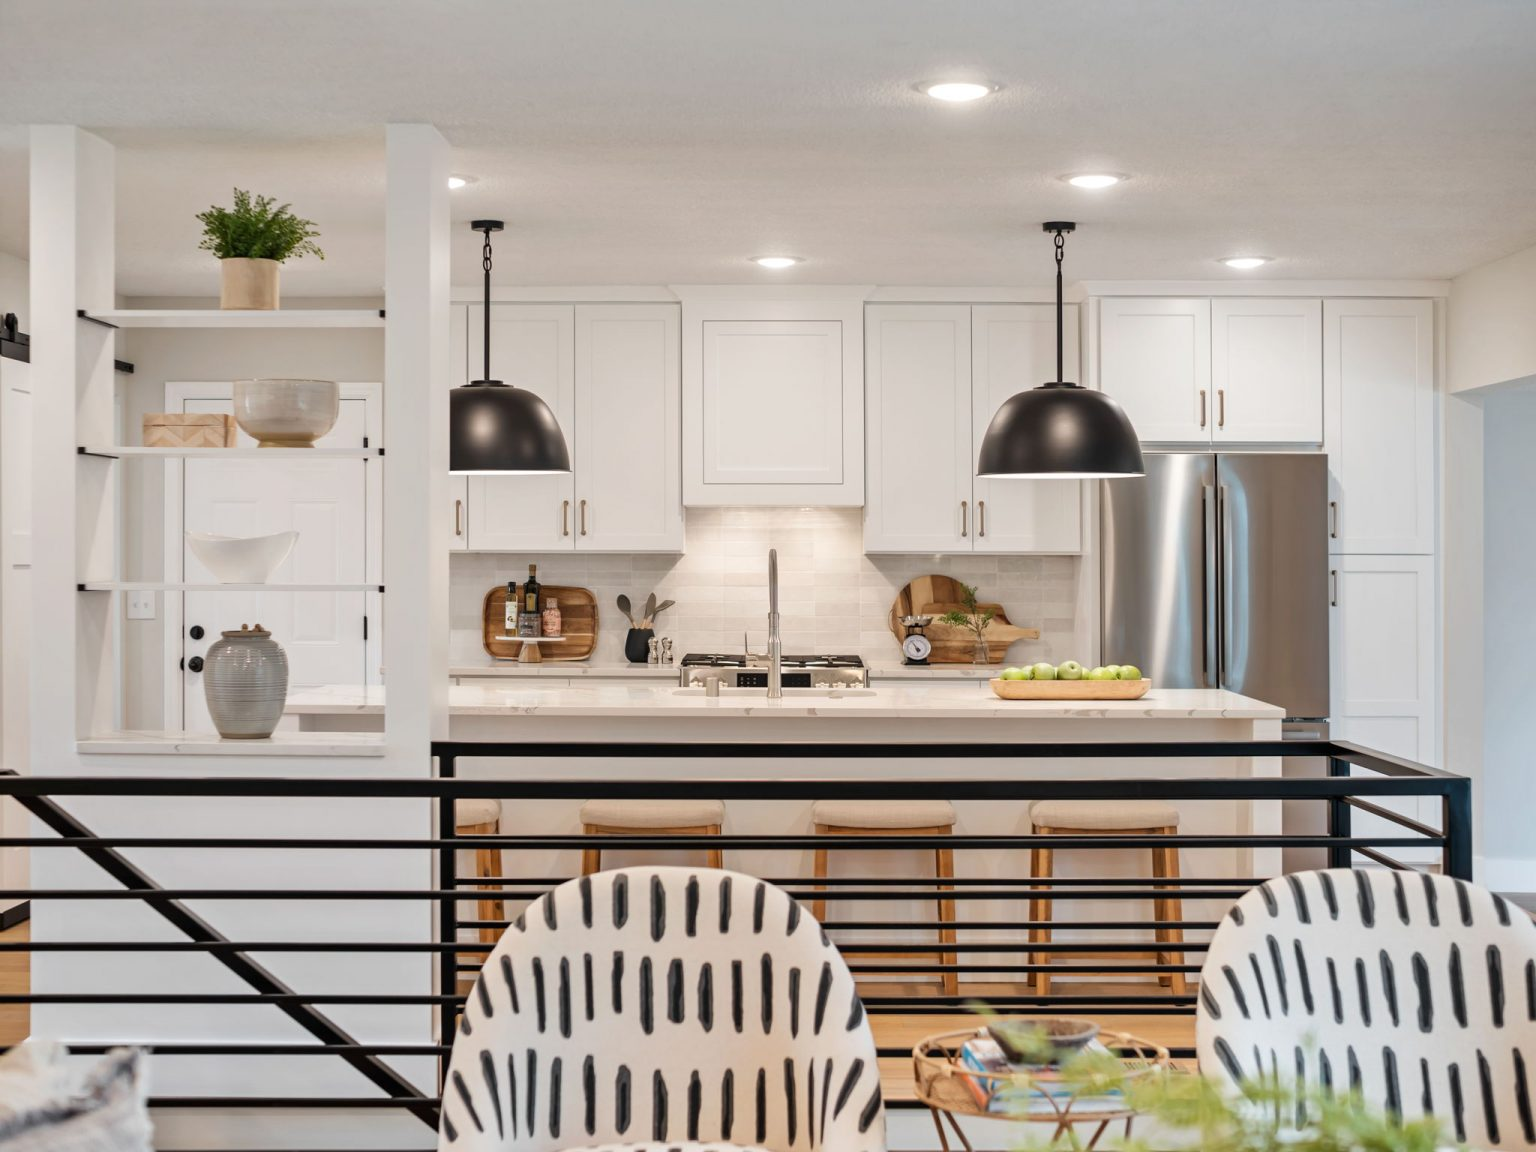 kitchen renovation, house flipping, before and after, kitchen design, real estate investing, flip house, kitchen renovation, kitchen remodel